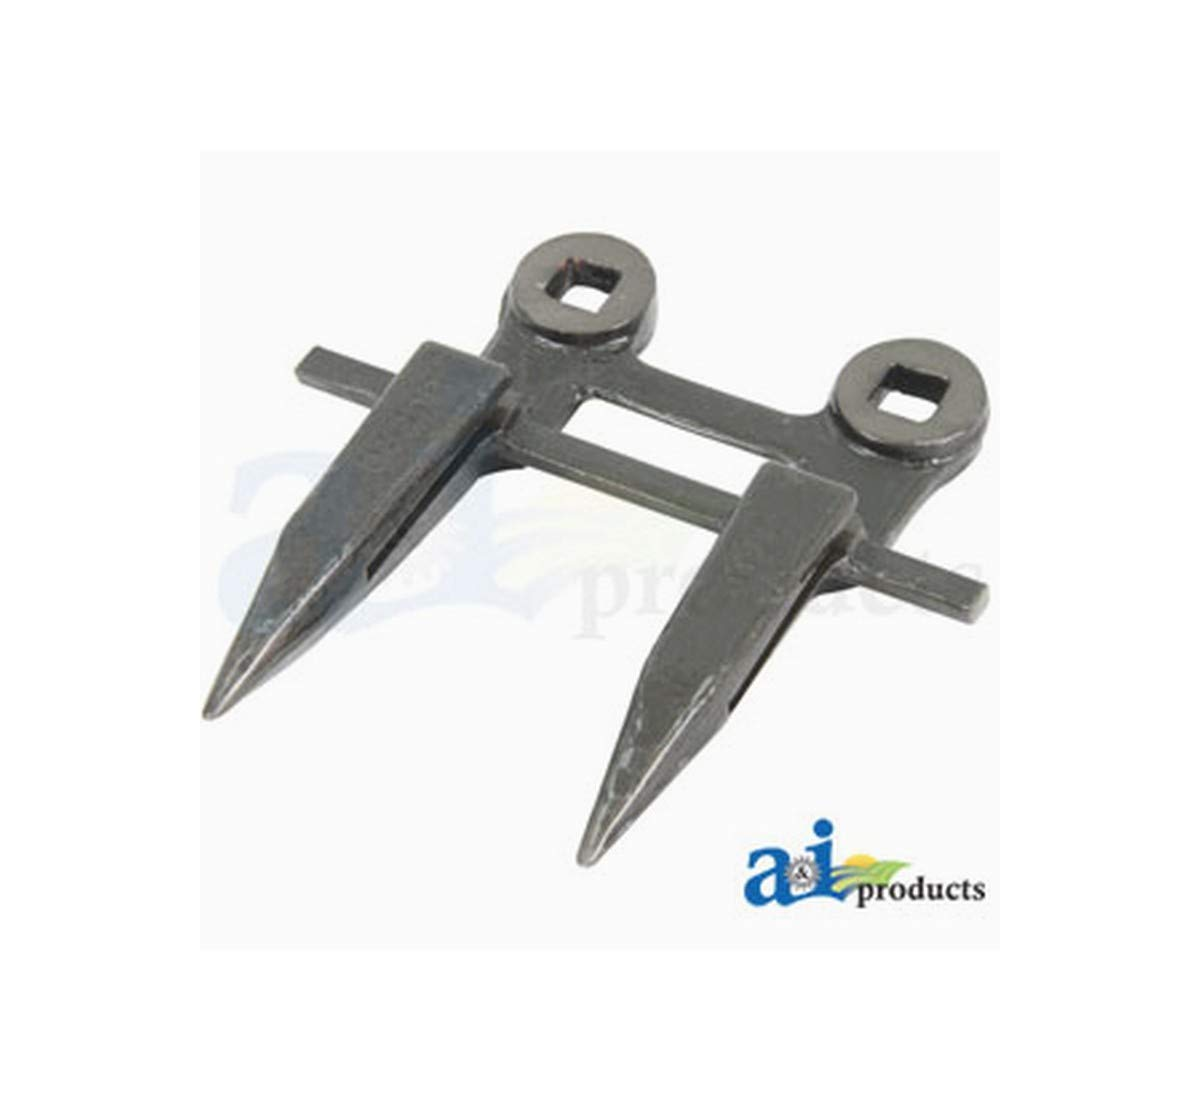 Heavy Equipment, Parts & Attachments Macdon 2 Prong Forged Guard Business & Industrial